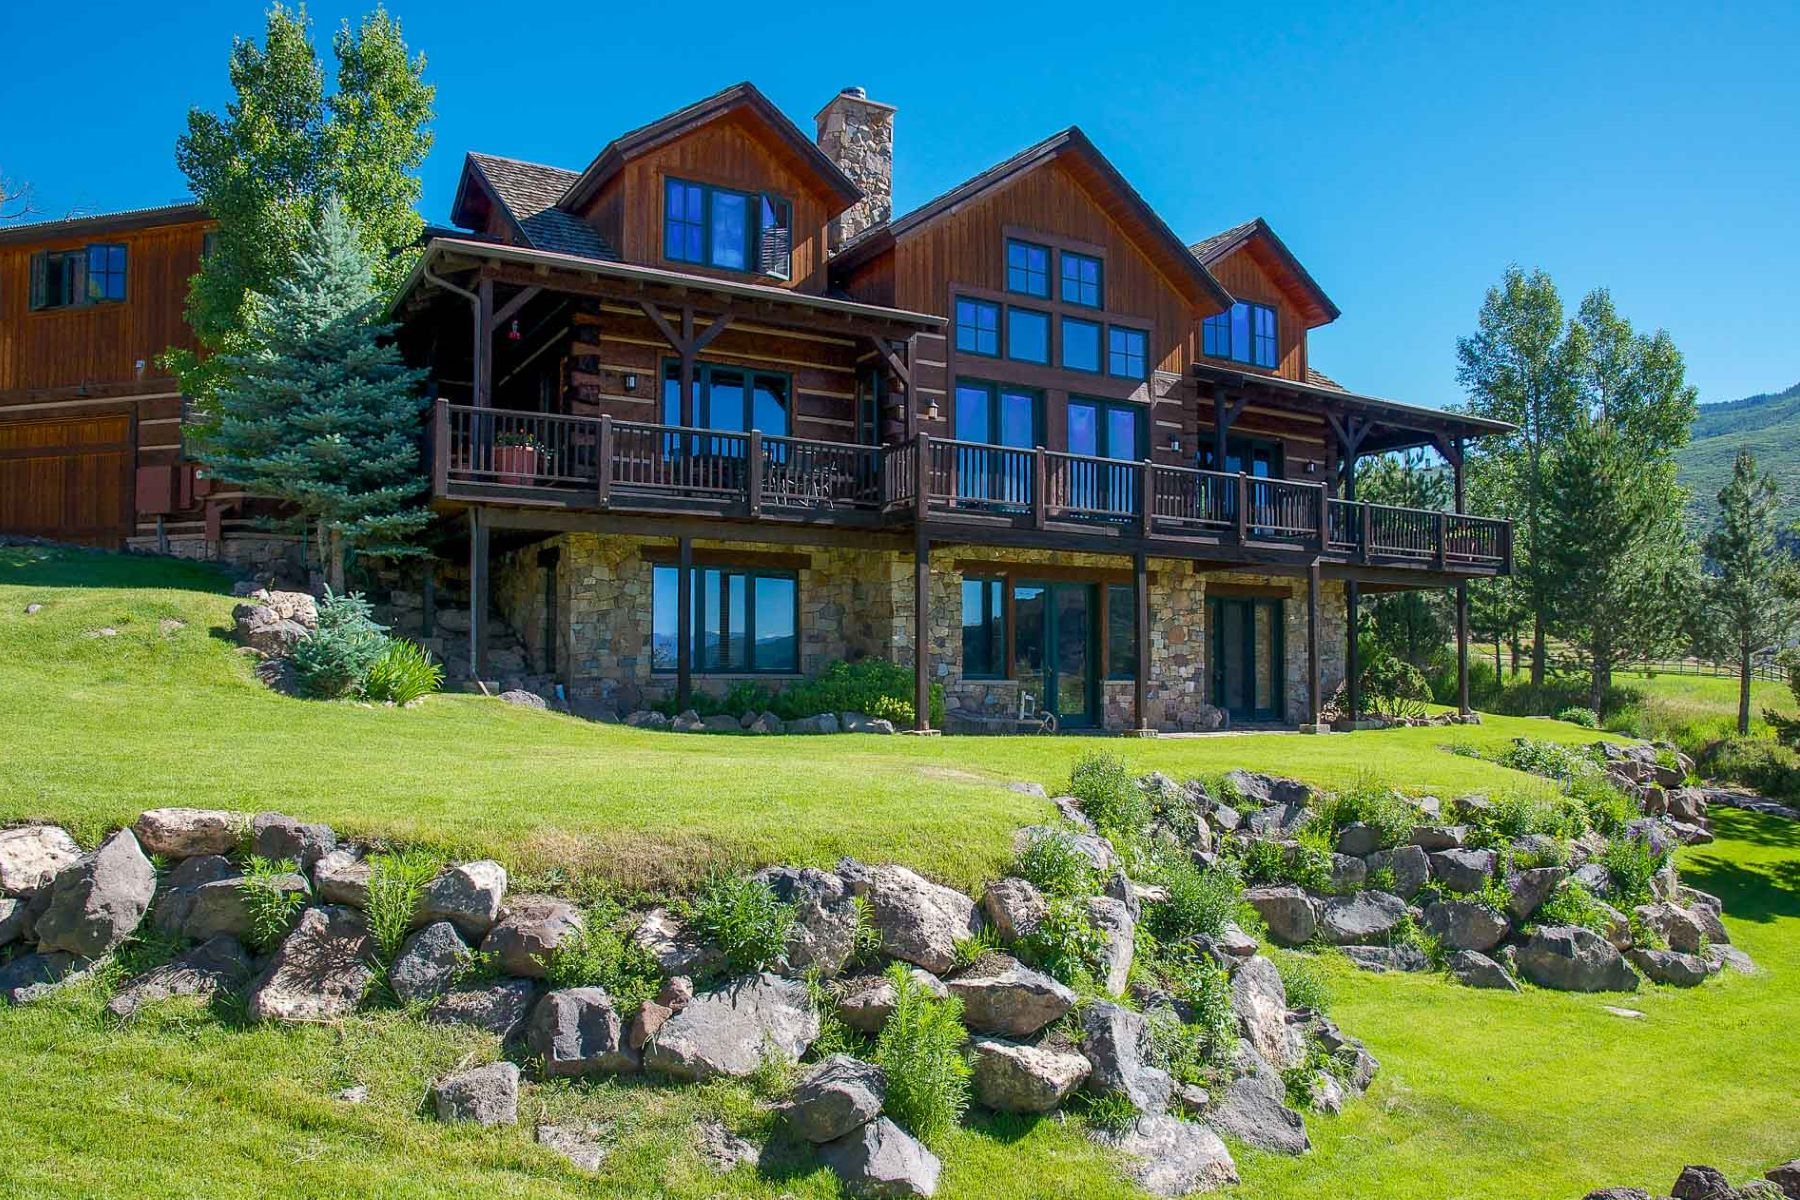 Single Family Home for Active at Log Home with Majestic Views Carbondale, Colorado 81623 United States